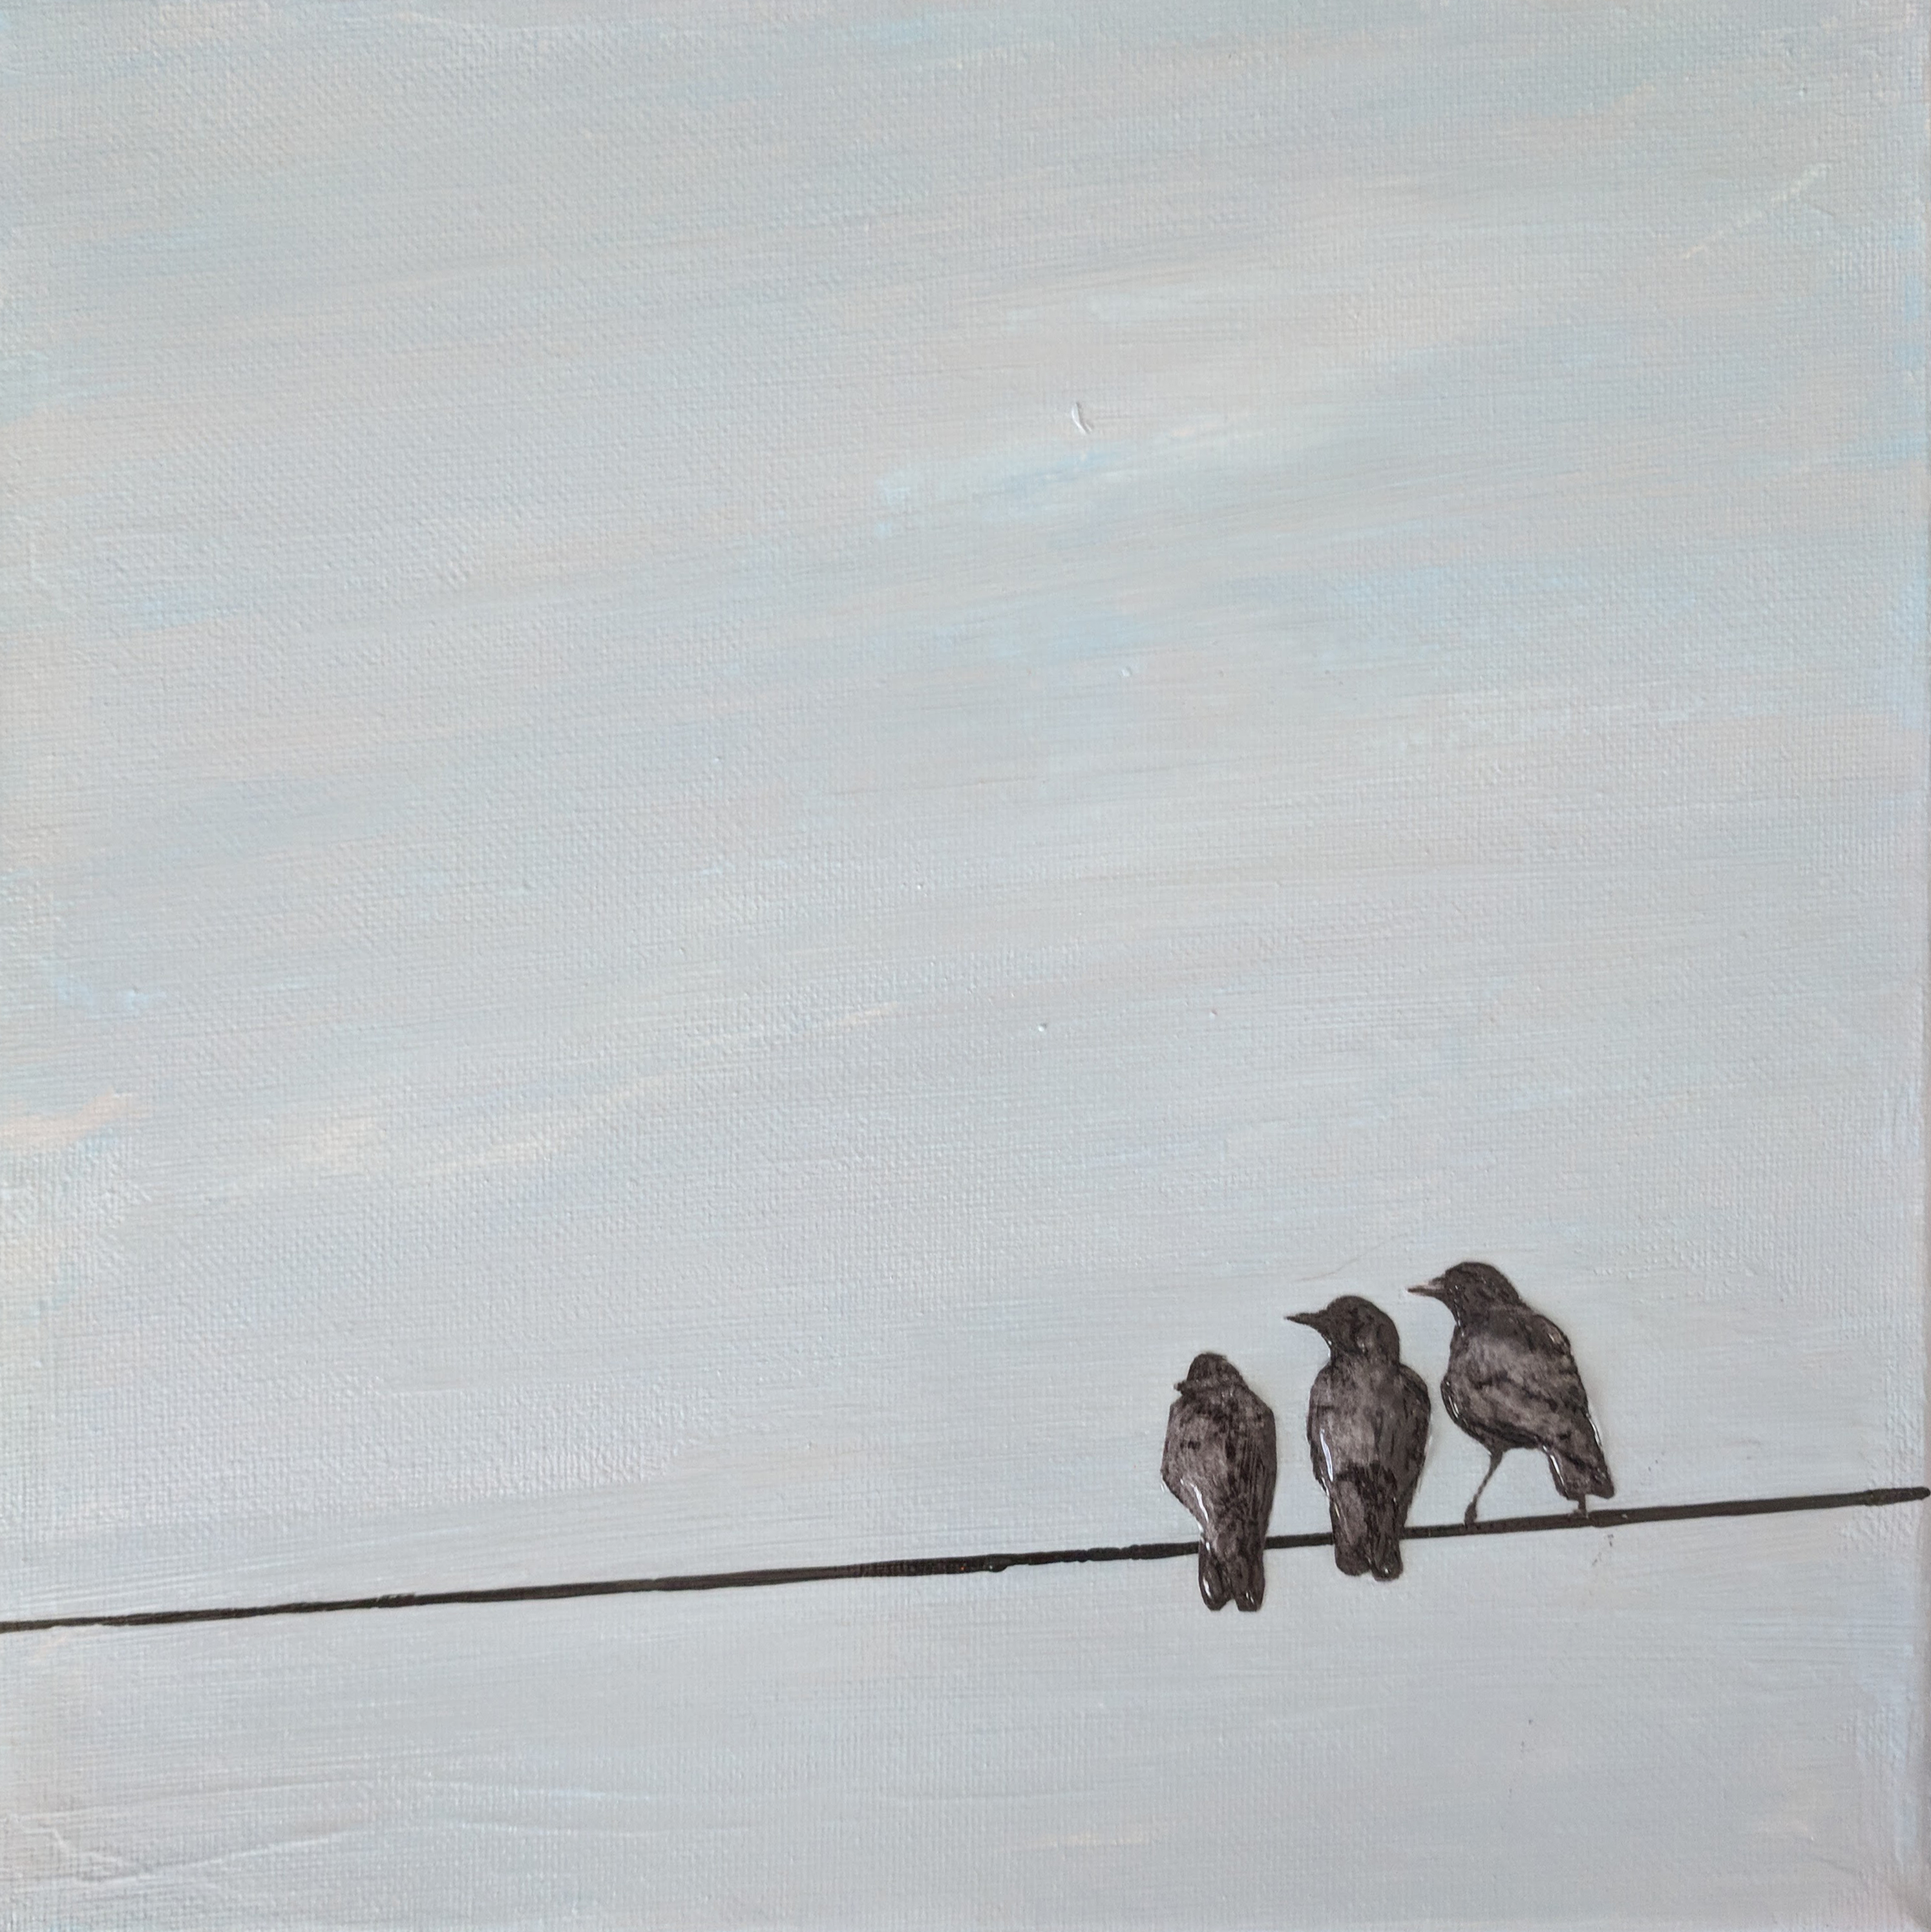 3 crows on a wire